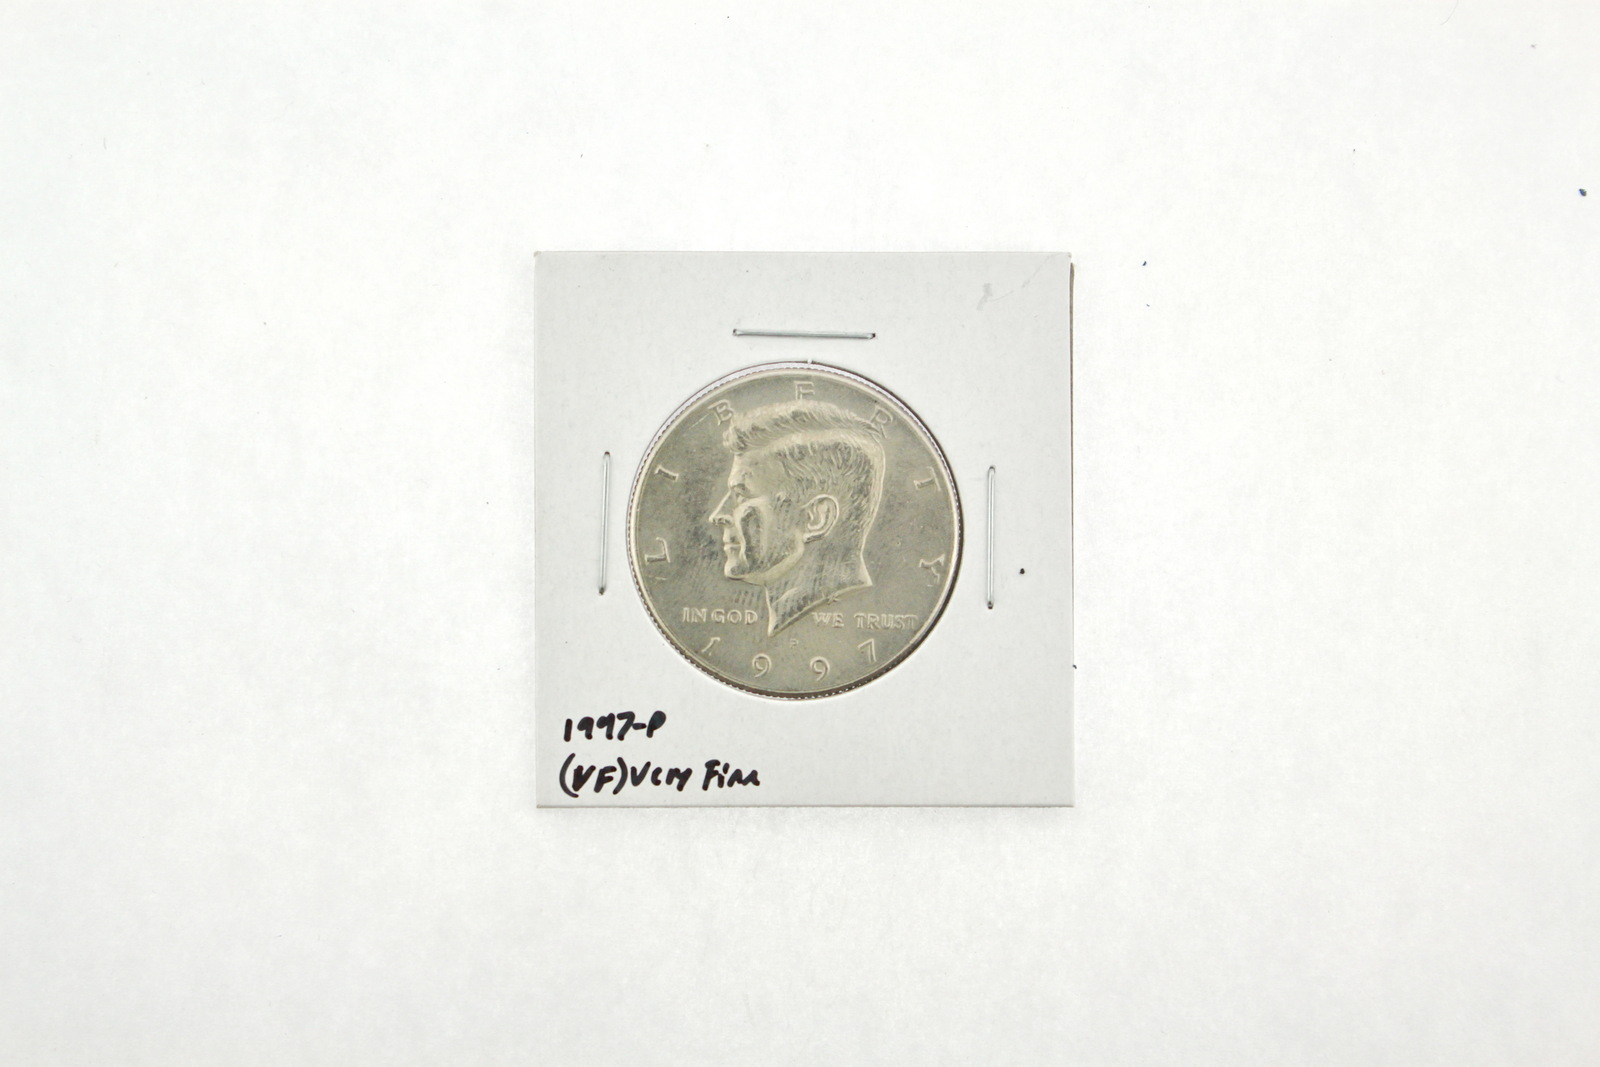 1997-P Kennedy Half Dollar (VF) Very Fine N2-3914-5